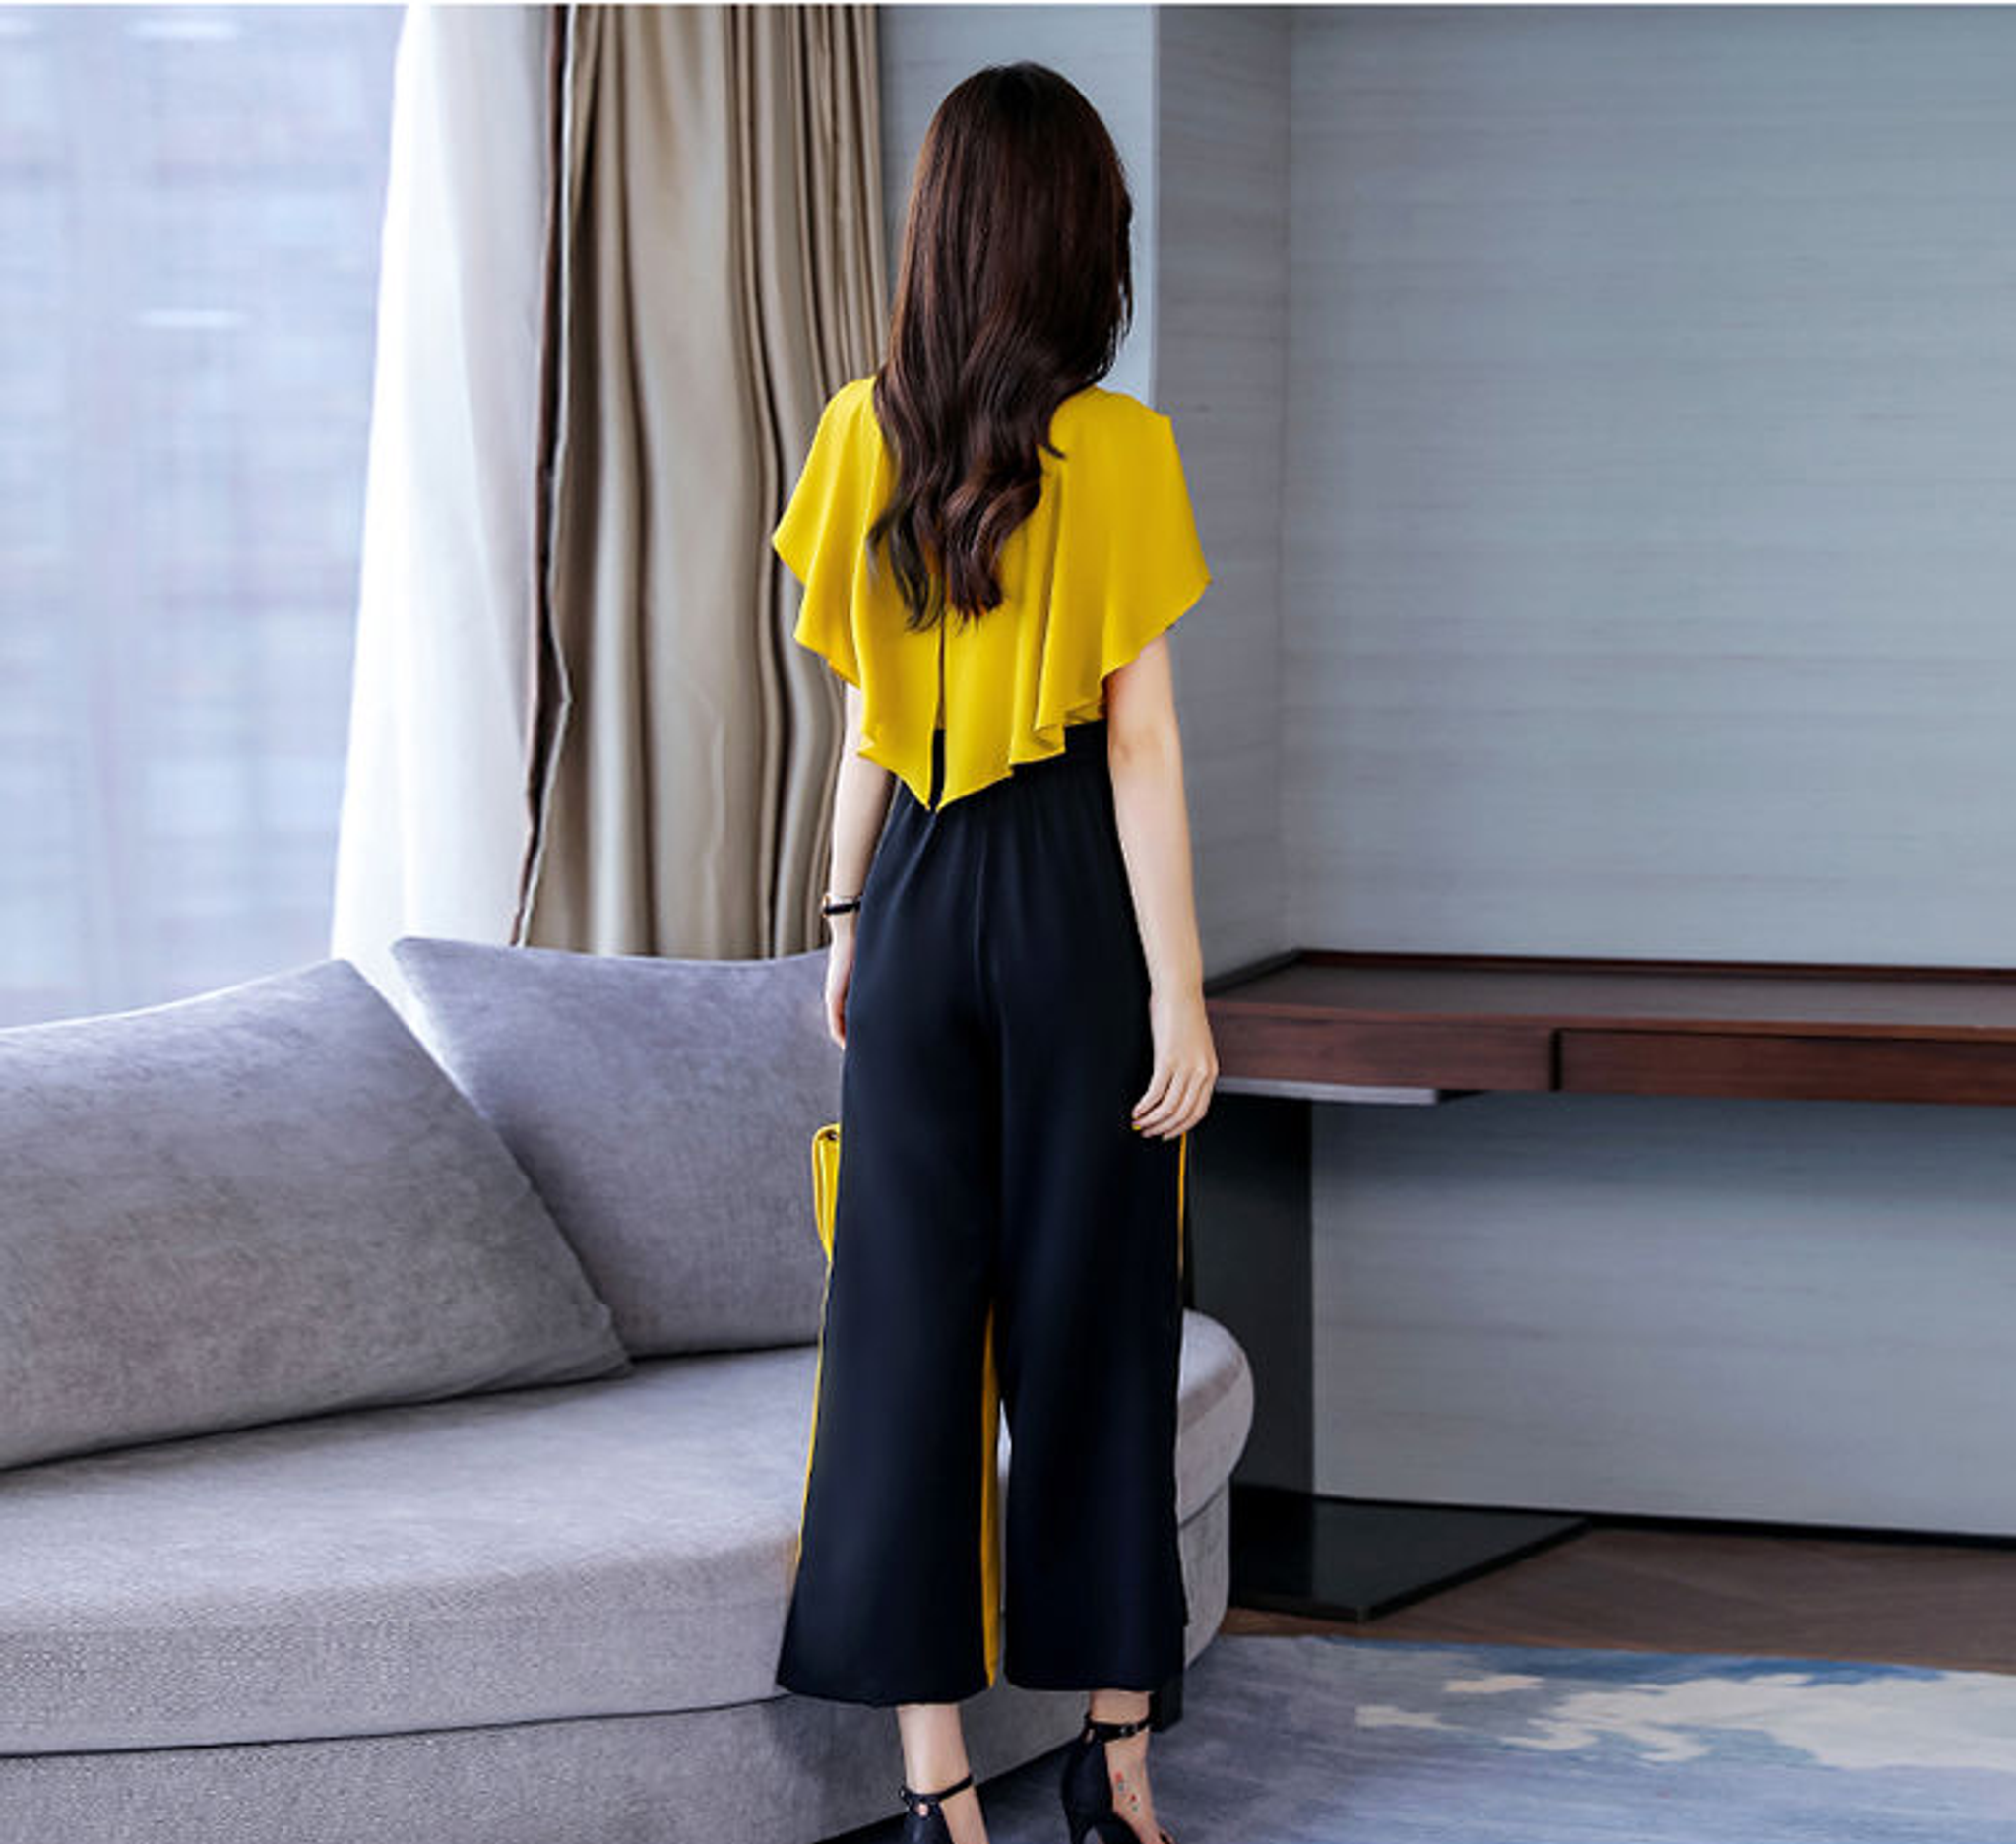 Fifth Avenue Color Block Top and Panel Pants 2 Piece Set TPS179 - Black and Yellow